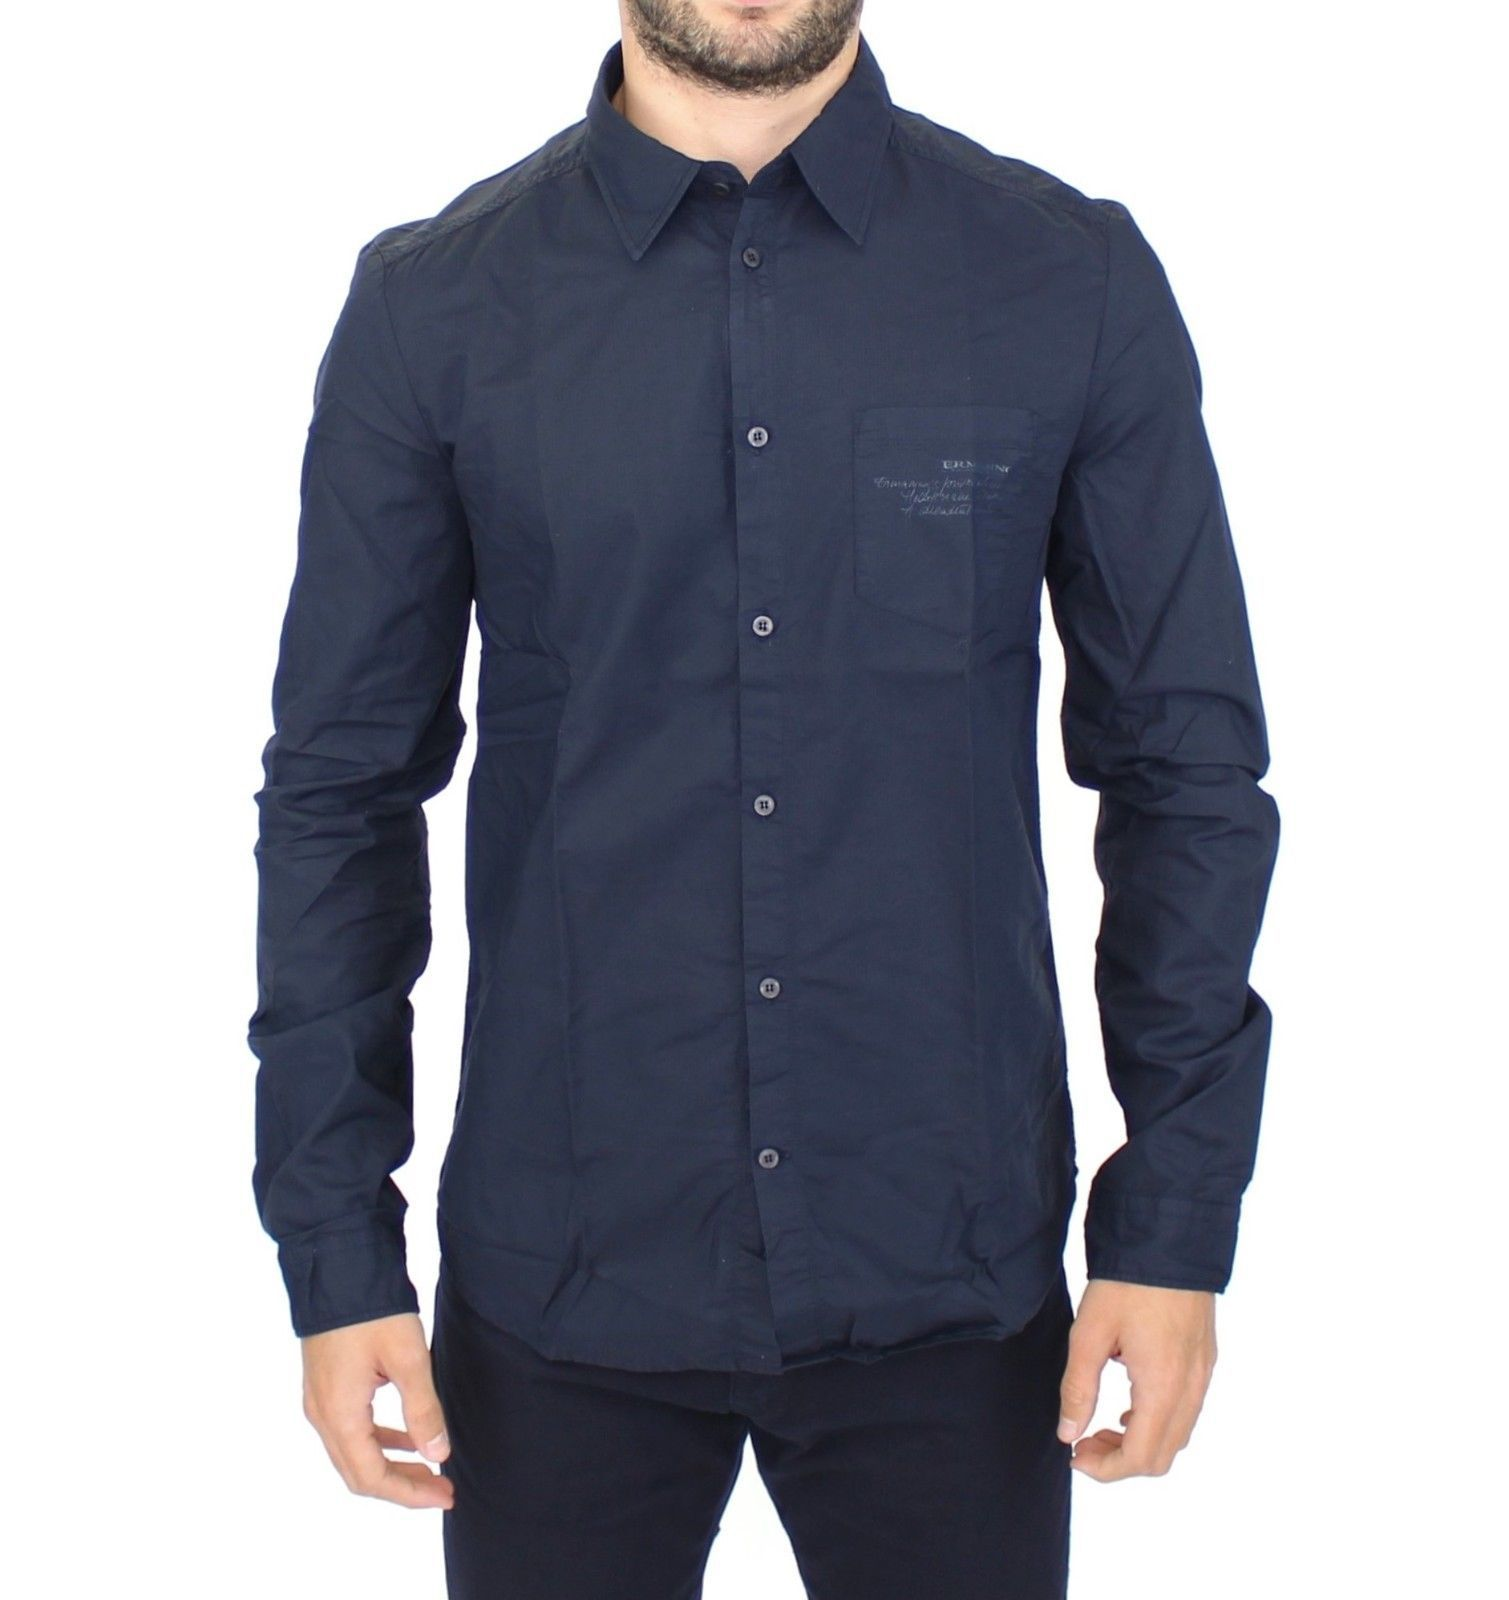 Ermanno Scervino Blue Cotton Casual Long Sleeve Shirt Top